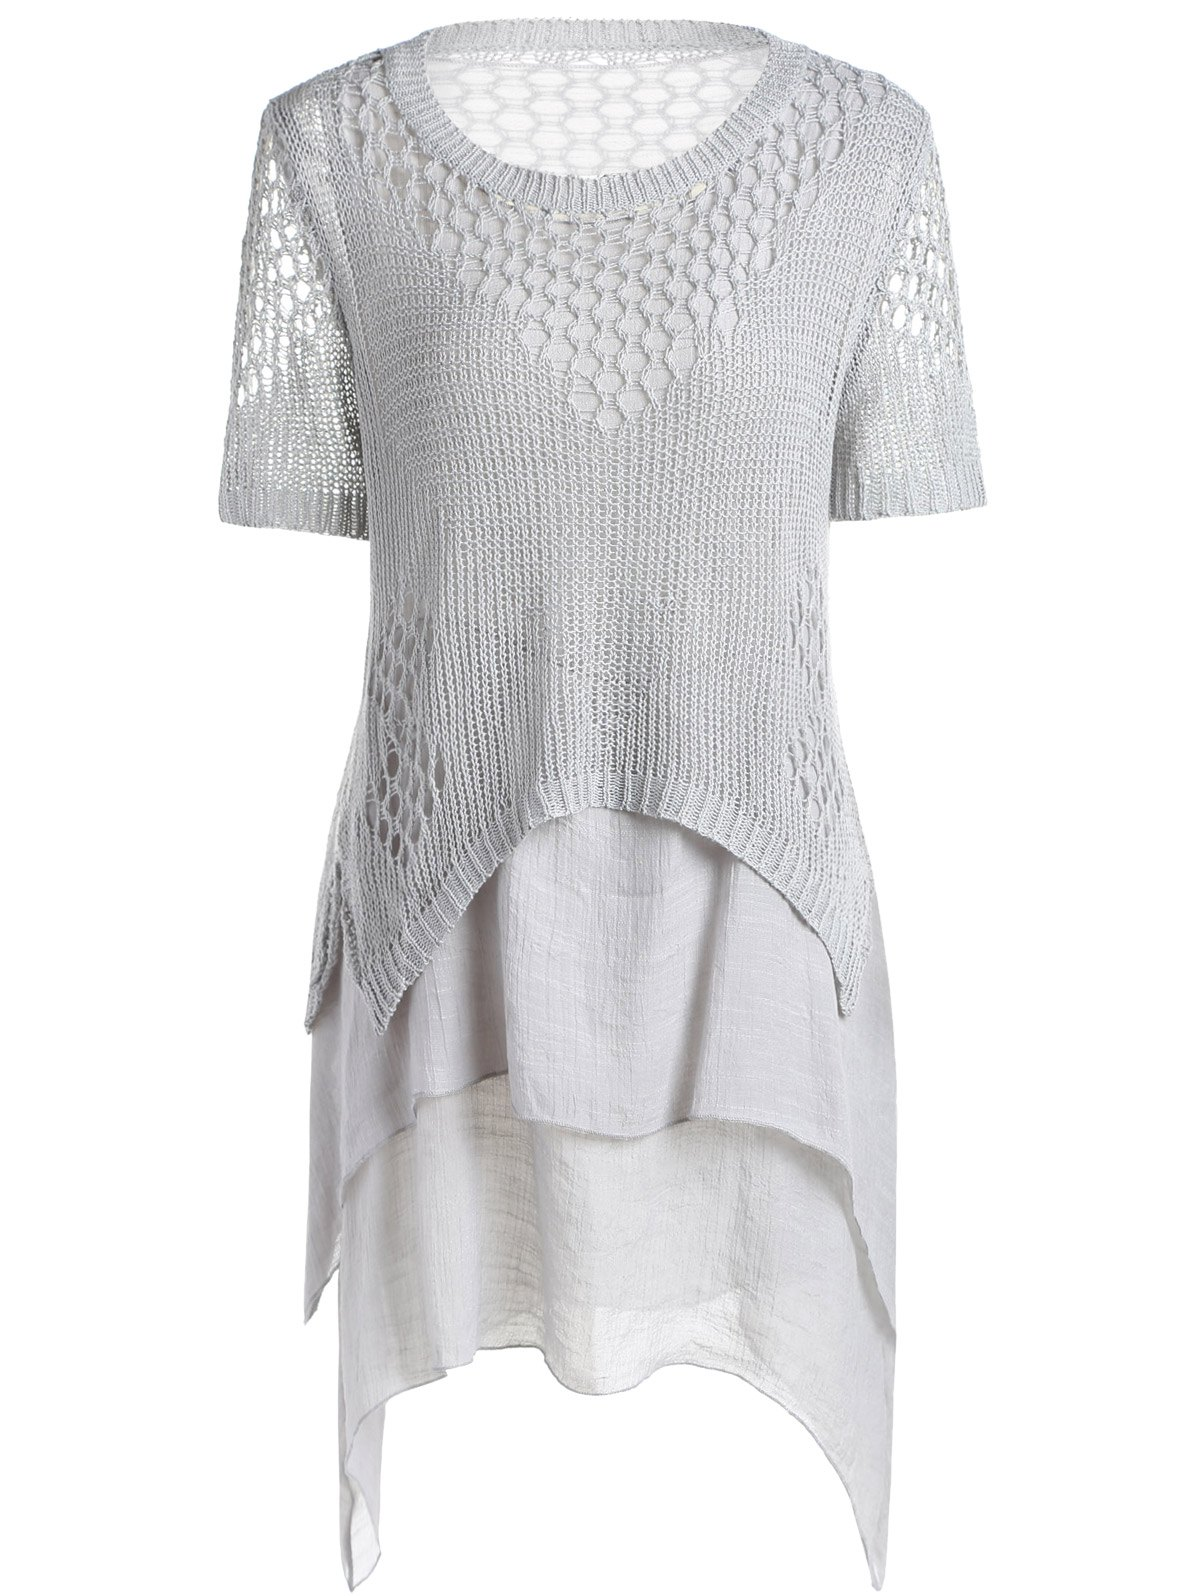 Trendy Women's Crochting Hollow Out Sweater + High Low Summer Dress Twinset